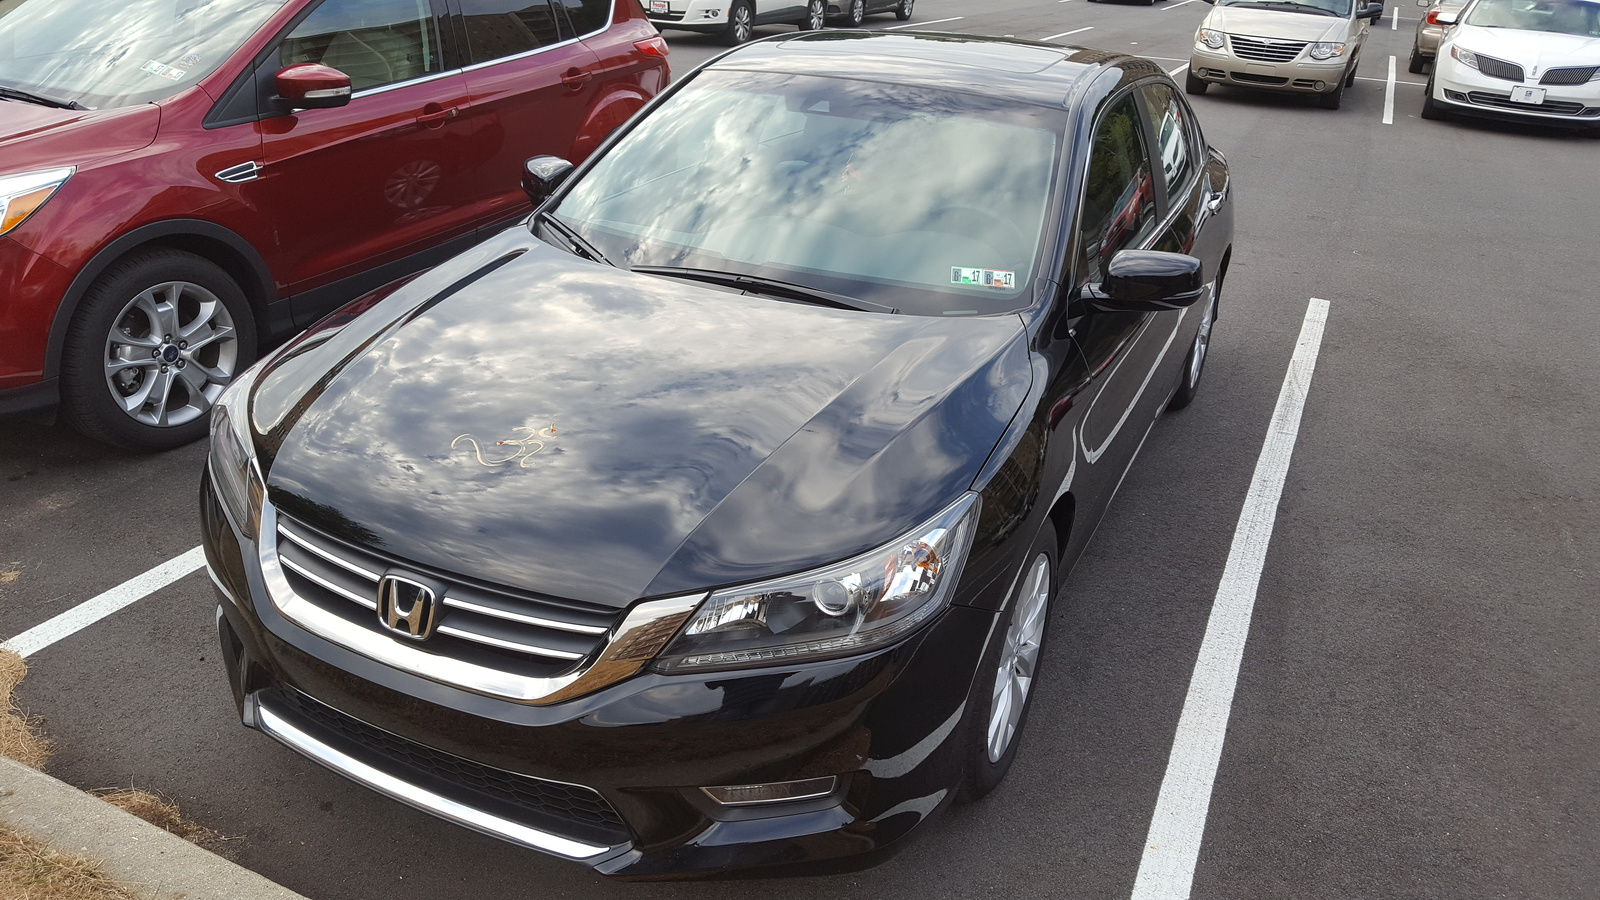 2013 honda accord ex l for sale in philadelphia pa cargurus for Honda accord exl 2013